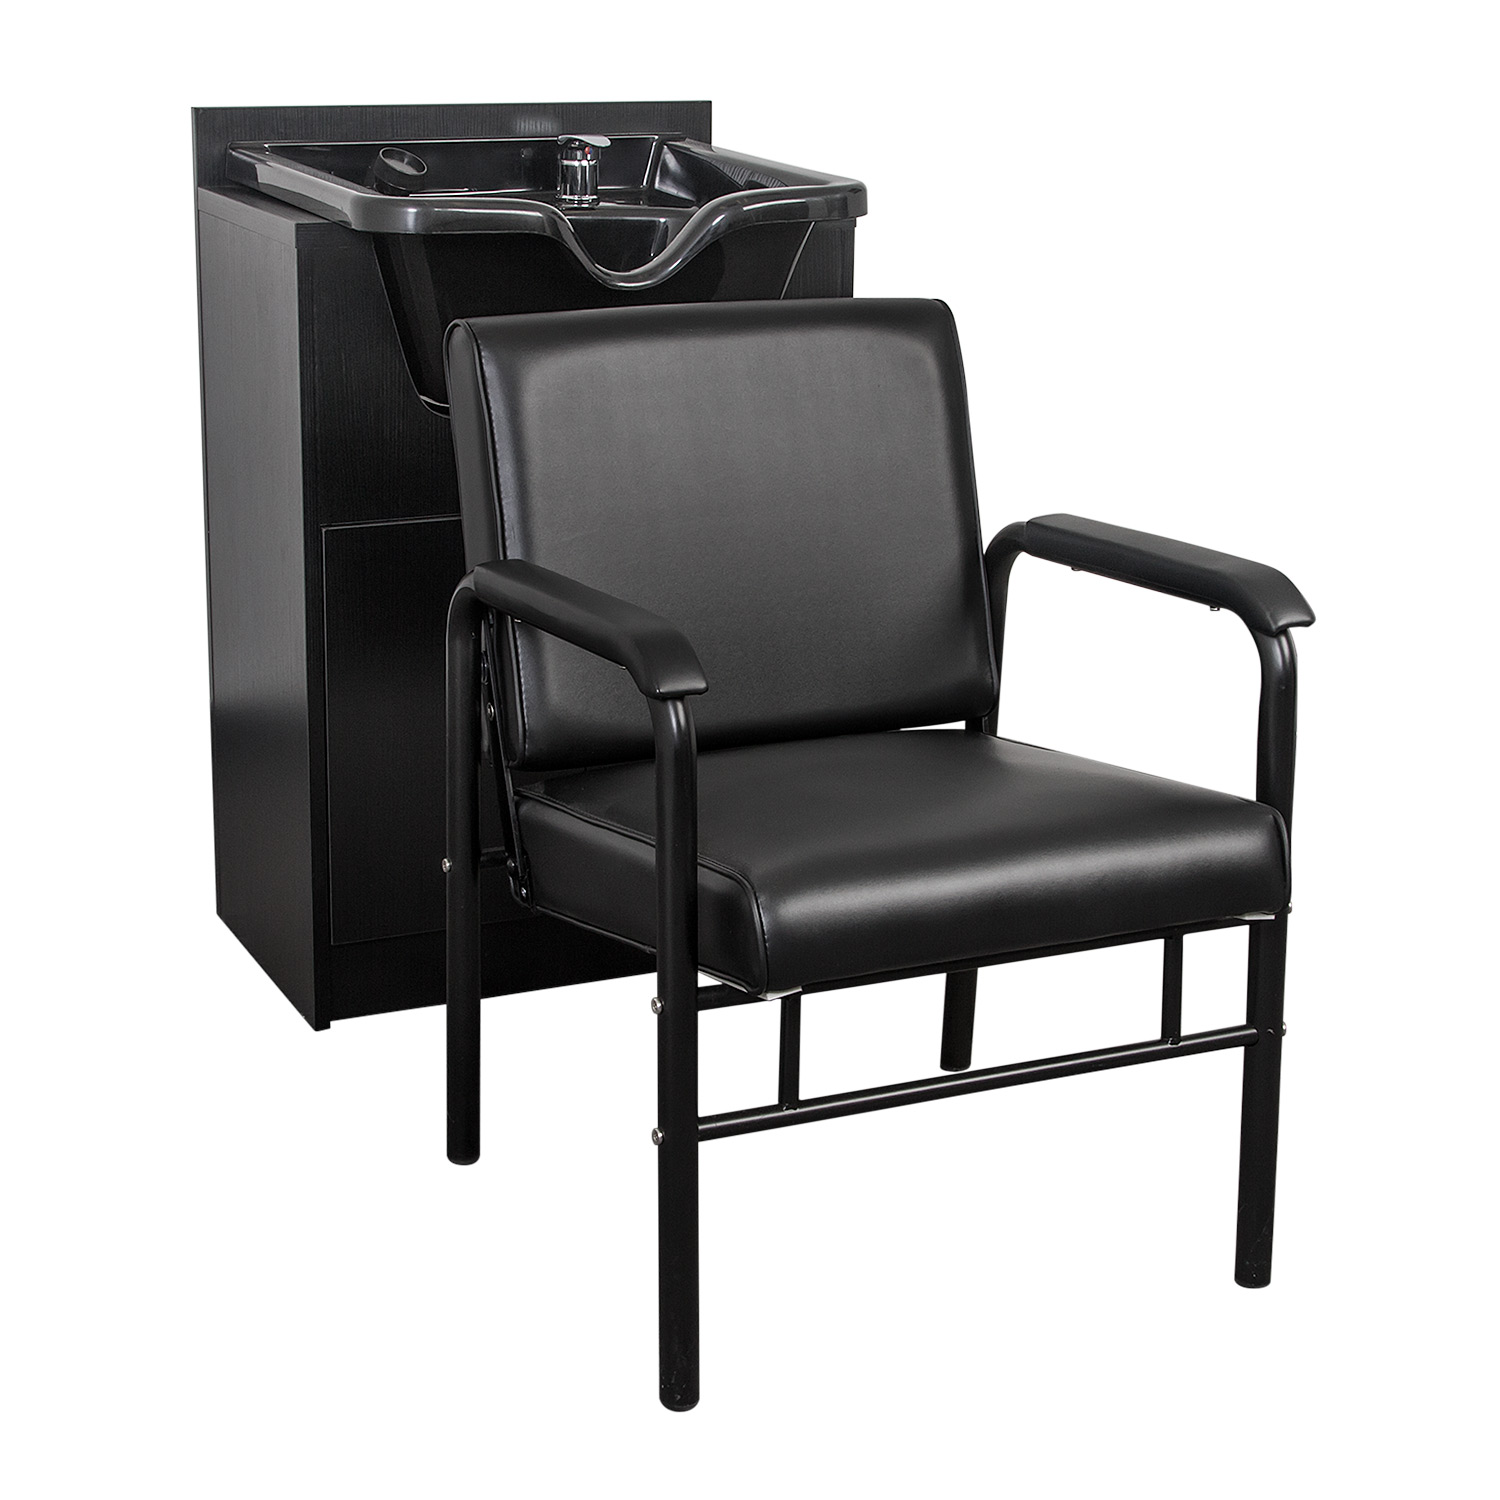 Salon Shampoo Chairs Shampoo Shuttles And Units Salon Tuff Auto Recline Chair